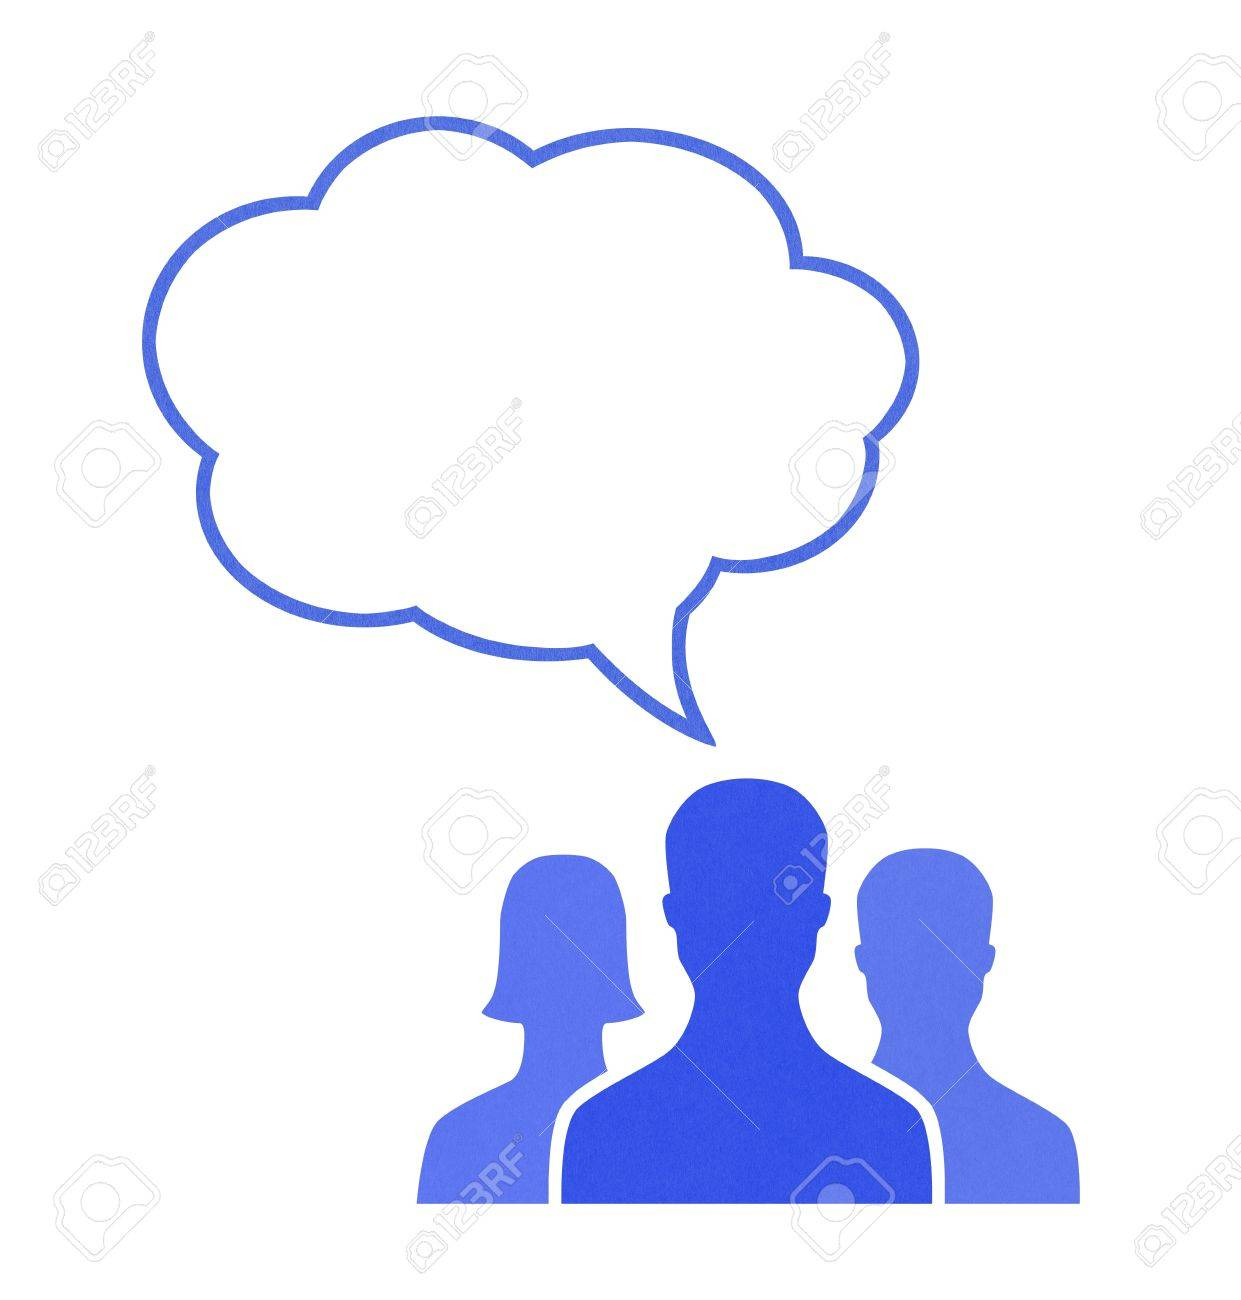 Paper human figures talk using speech bubble. Concept image on communication theme. Isolated on white. Stock Photo - 11840000